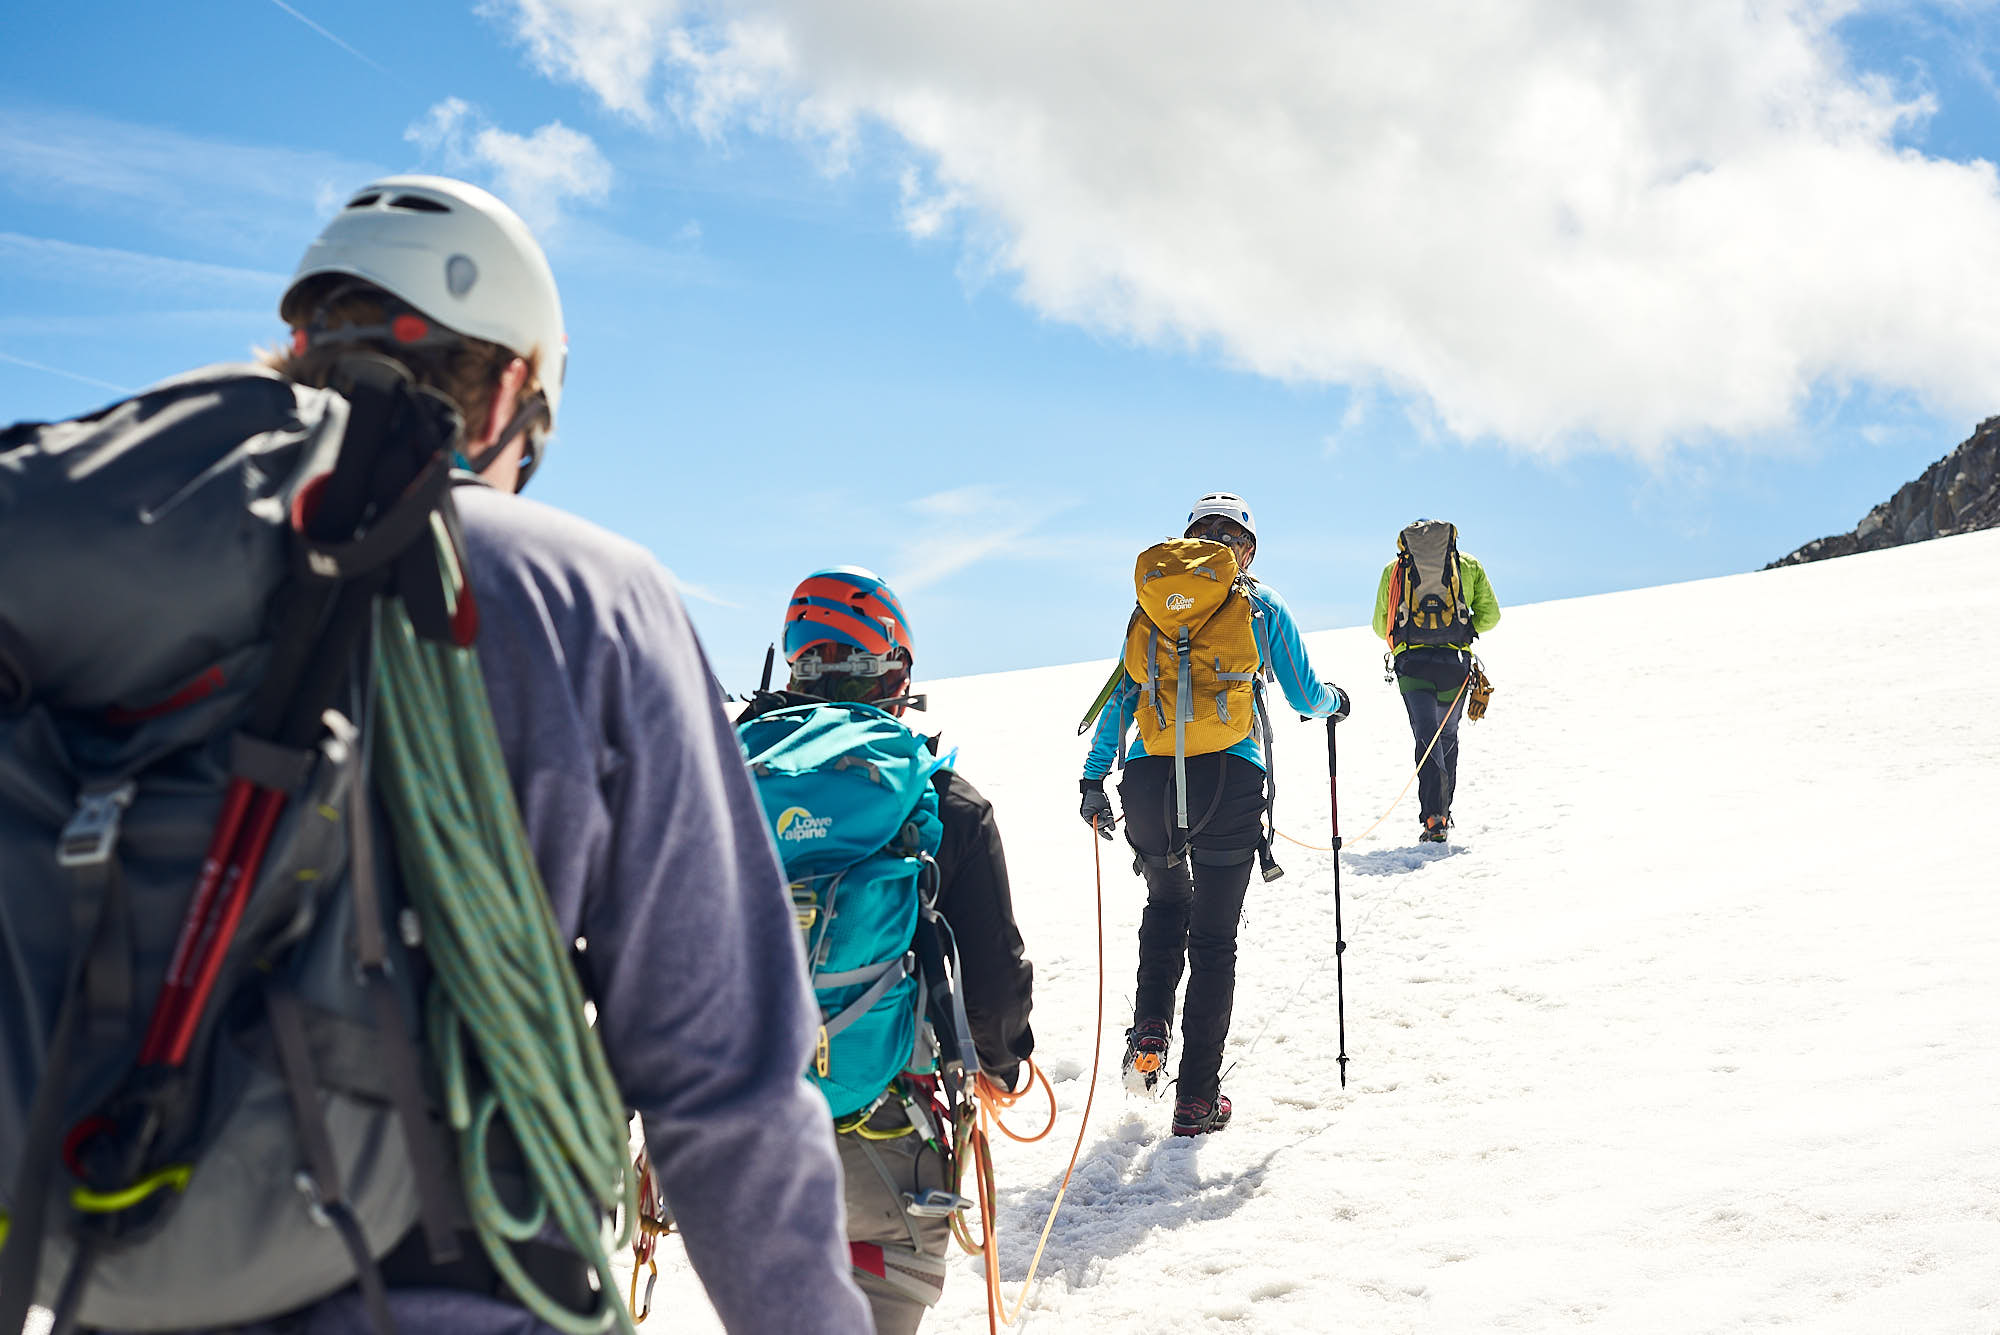 Mountaineers climbing a snowy hill in the European Alps